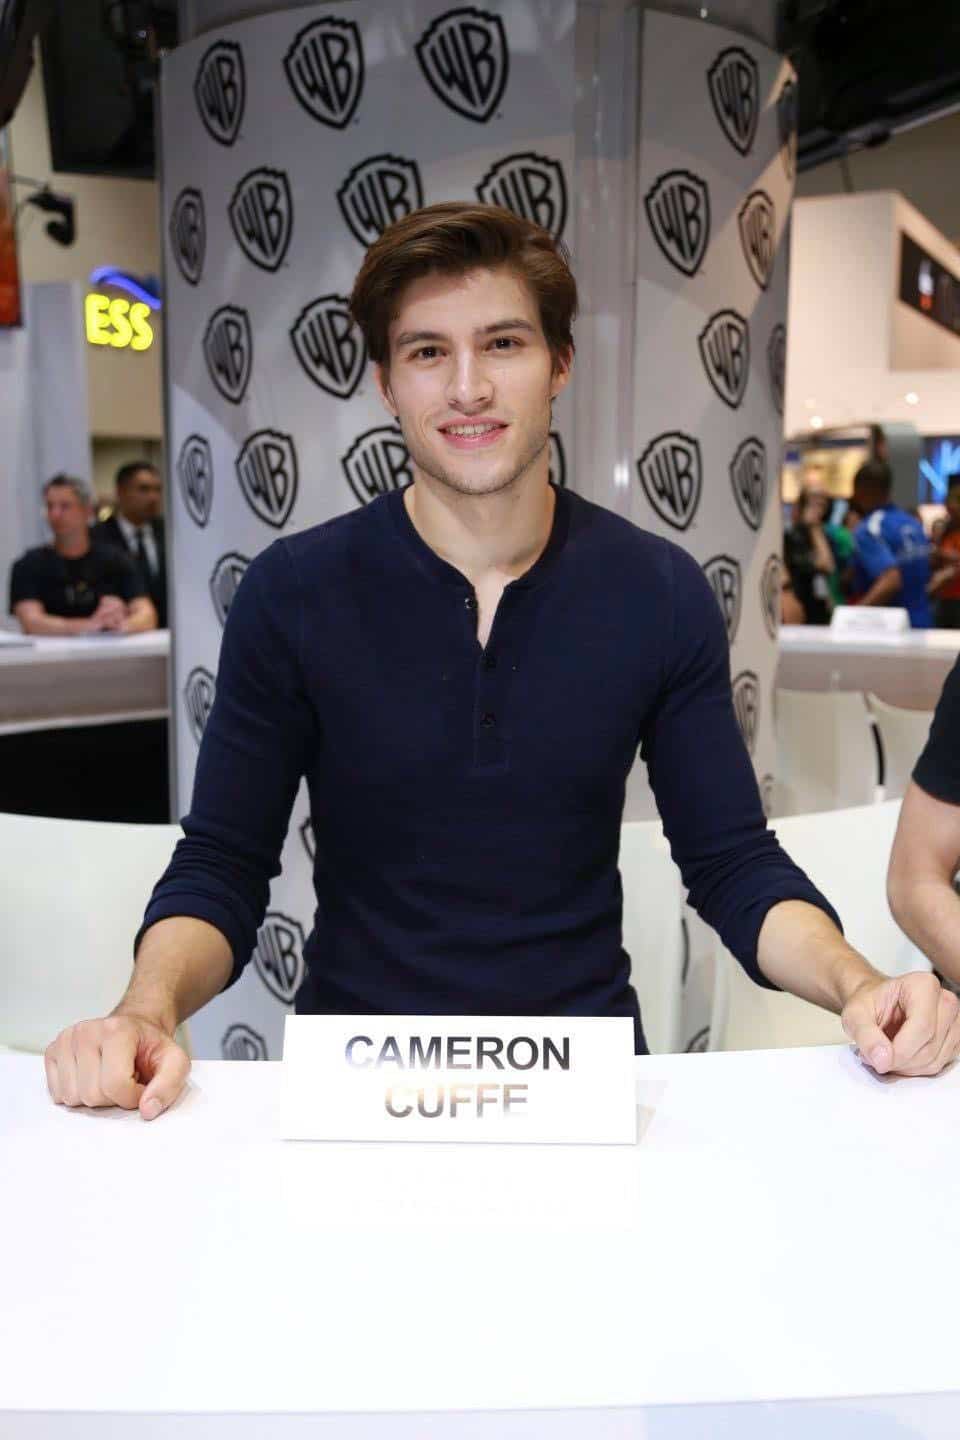 KRYPTON star Cameron Cuffe drops by the Warner Bros. booth at Comic-Con 2017 on Saturday, July 22. #WBSDCC (© 2017 WBEI. All Rights Reserved)